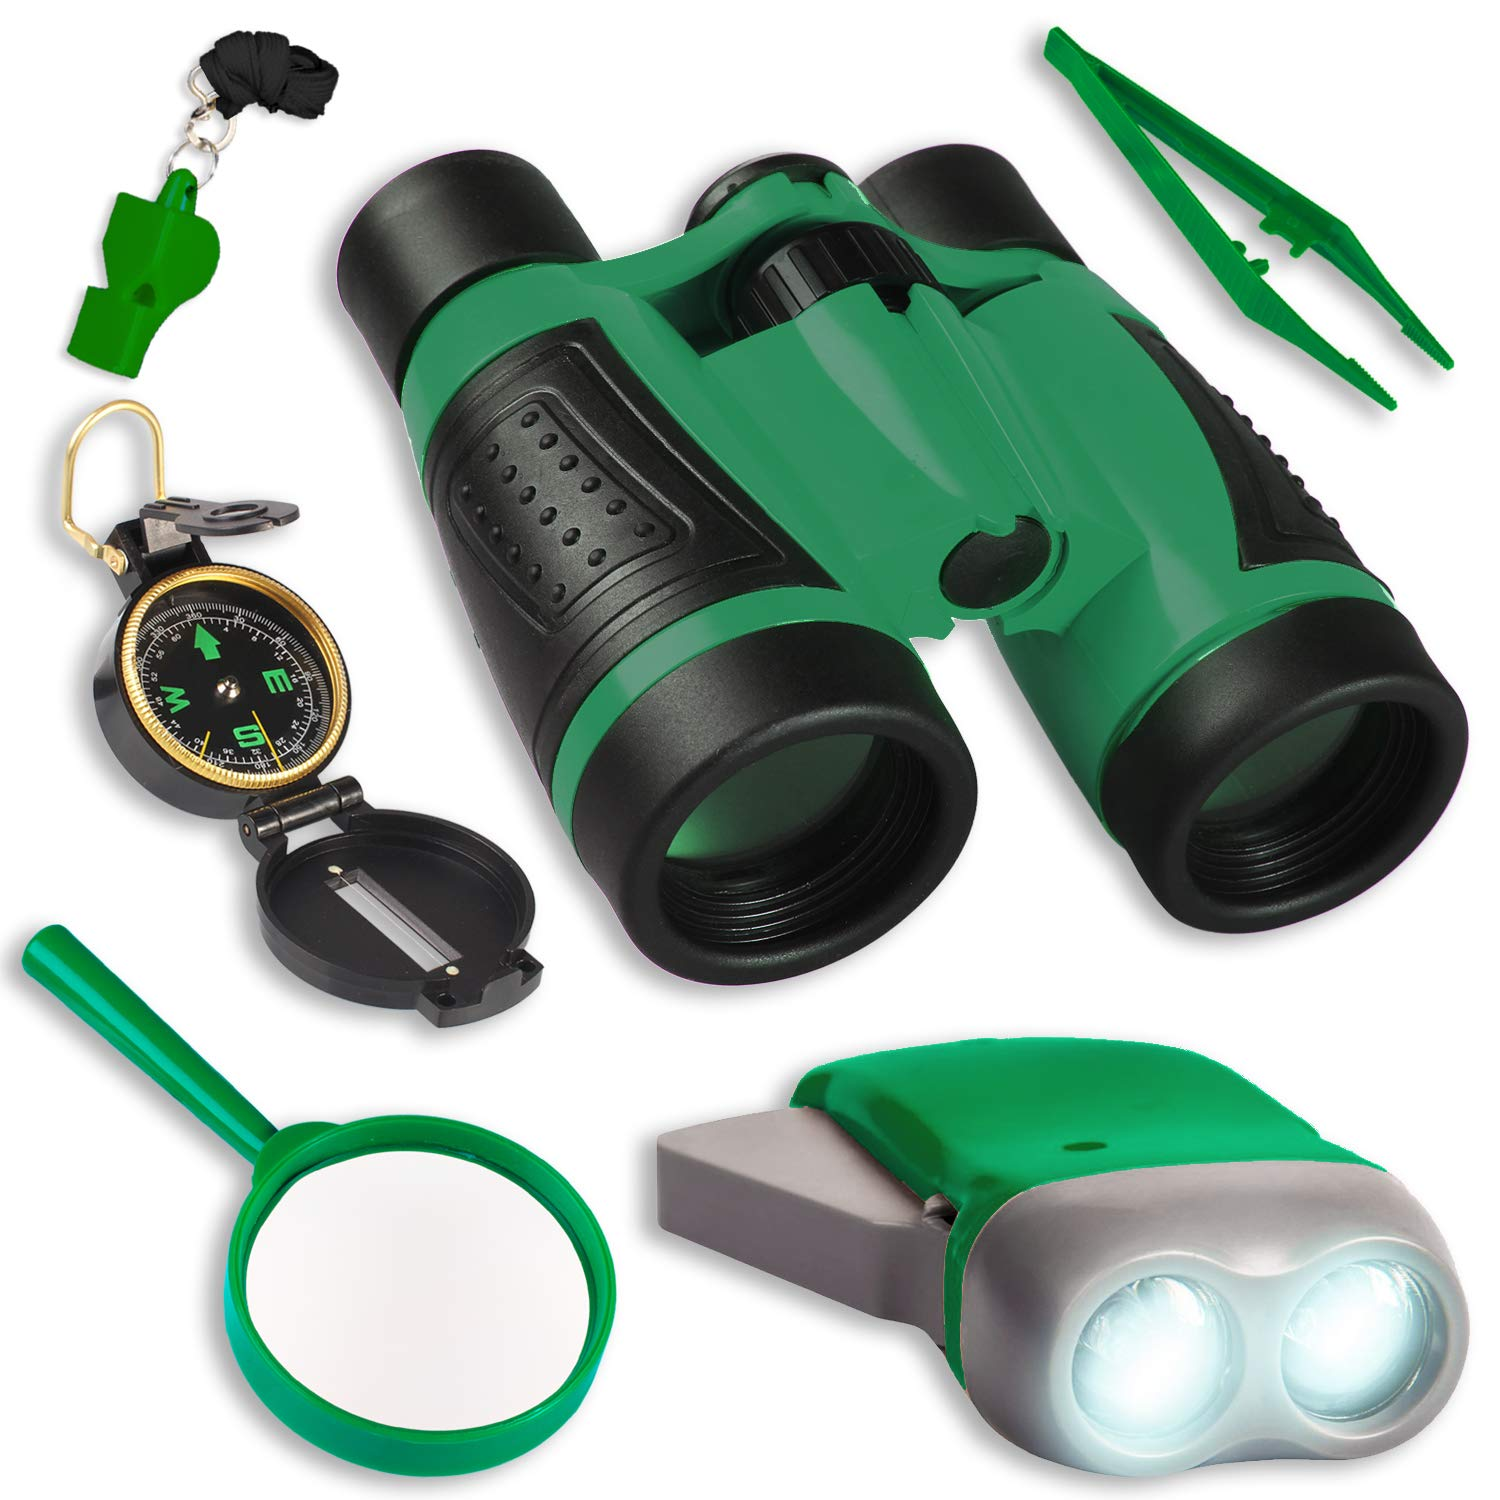 UTTORA Kids Binoculars Toy Set,Outdoor Explorer Kit Children's Adventure Toy with Compass Magnifying Glass Bug Collector, Great Educational Camping Hiking Gift for Boys and Girls (7pcs)